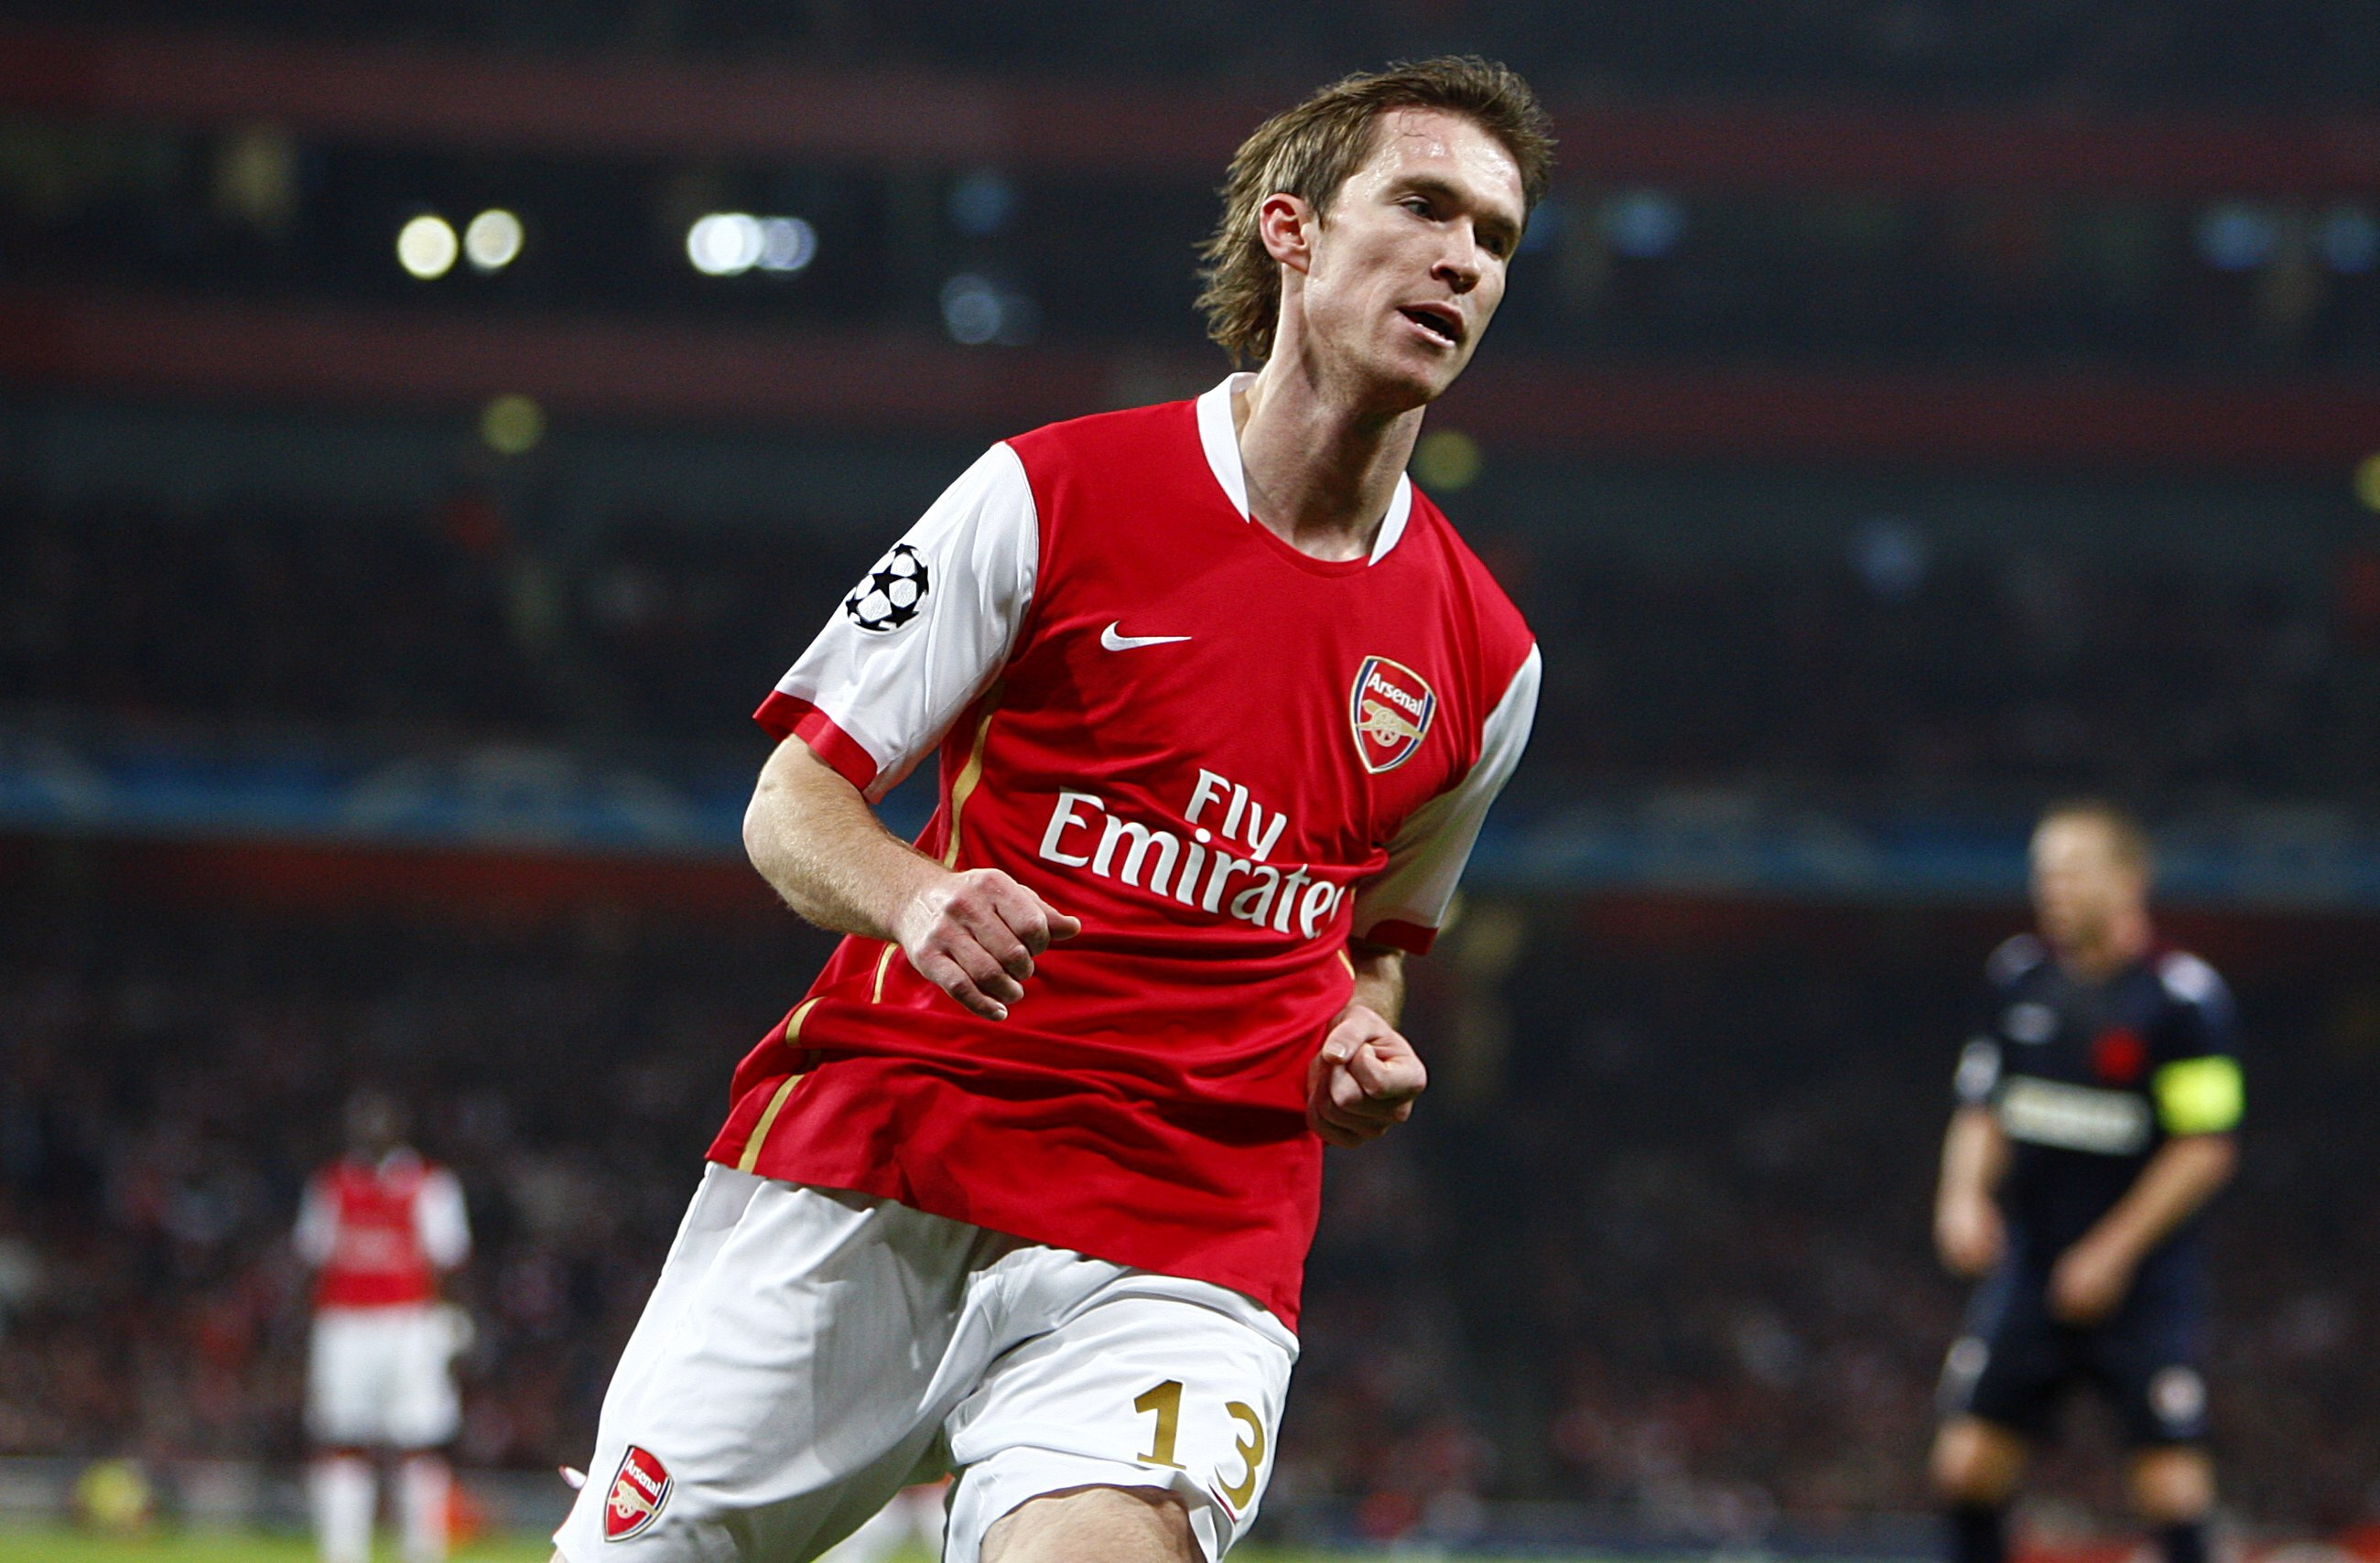 Alexander Hleb is still going strong at the age of 37